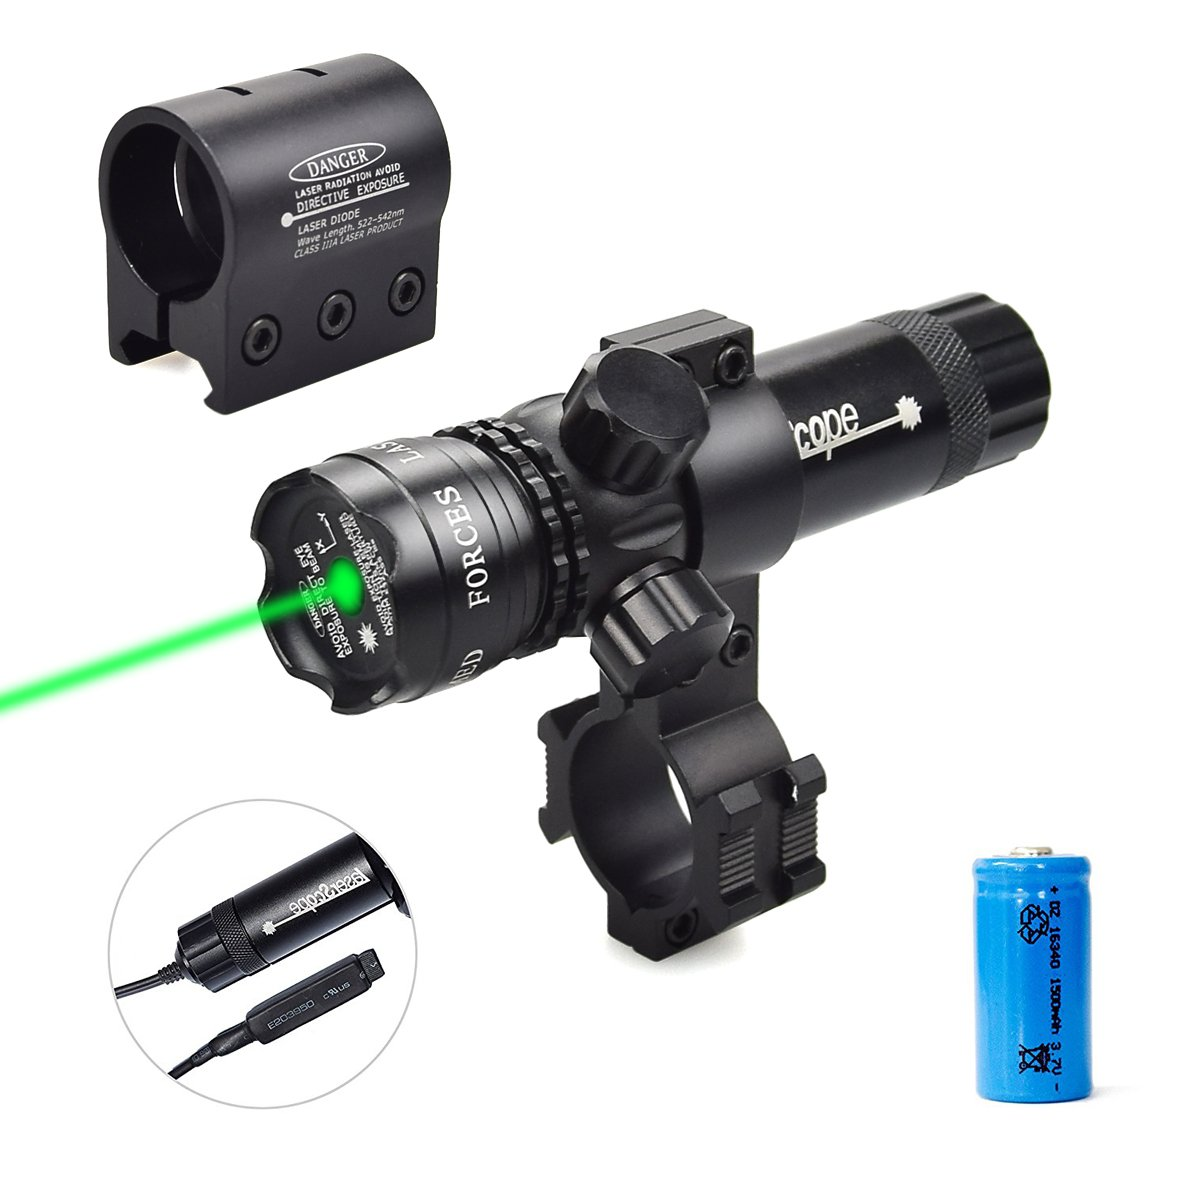 Twod Gun Sight Laser Green Dot 532nm Rifle Scope with 20mm Picatinny Mount & 1'' Ring Mount Adapter, Remote Pressure Switch